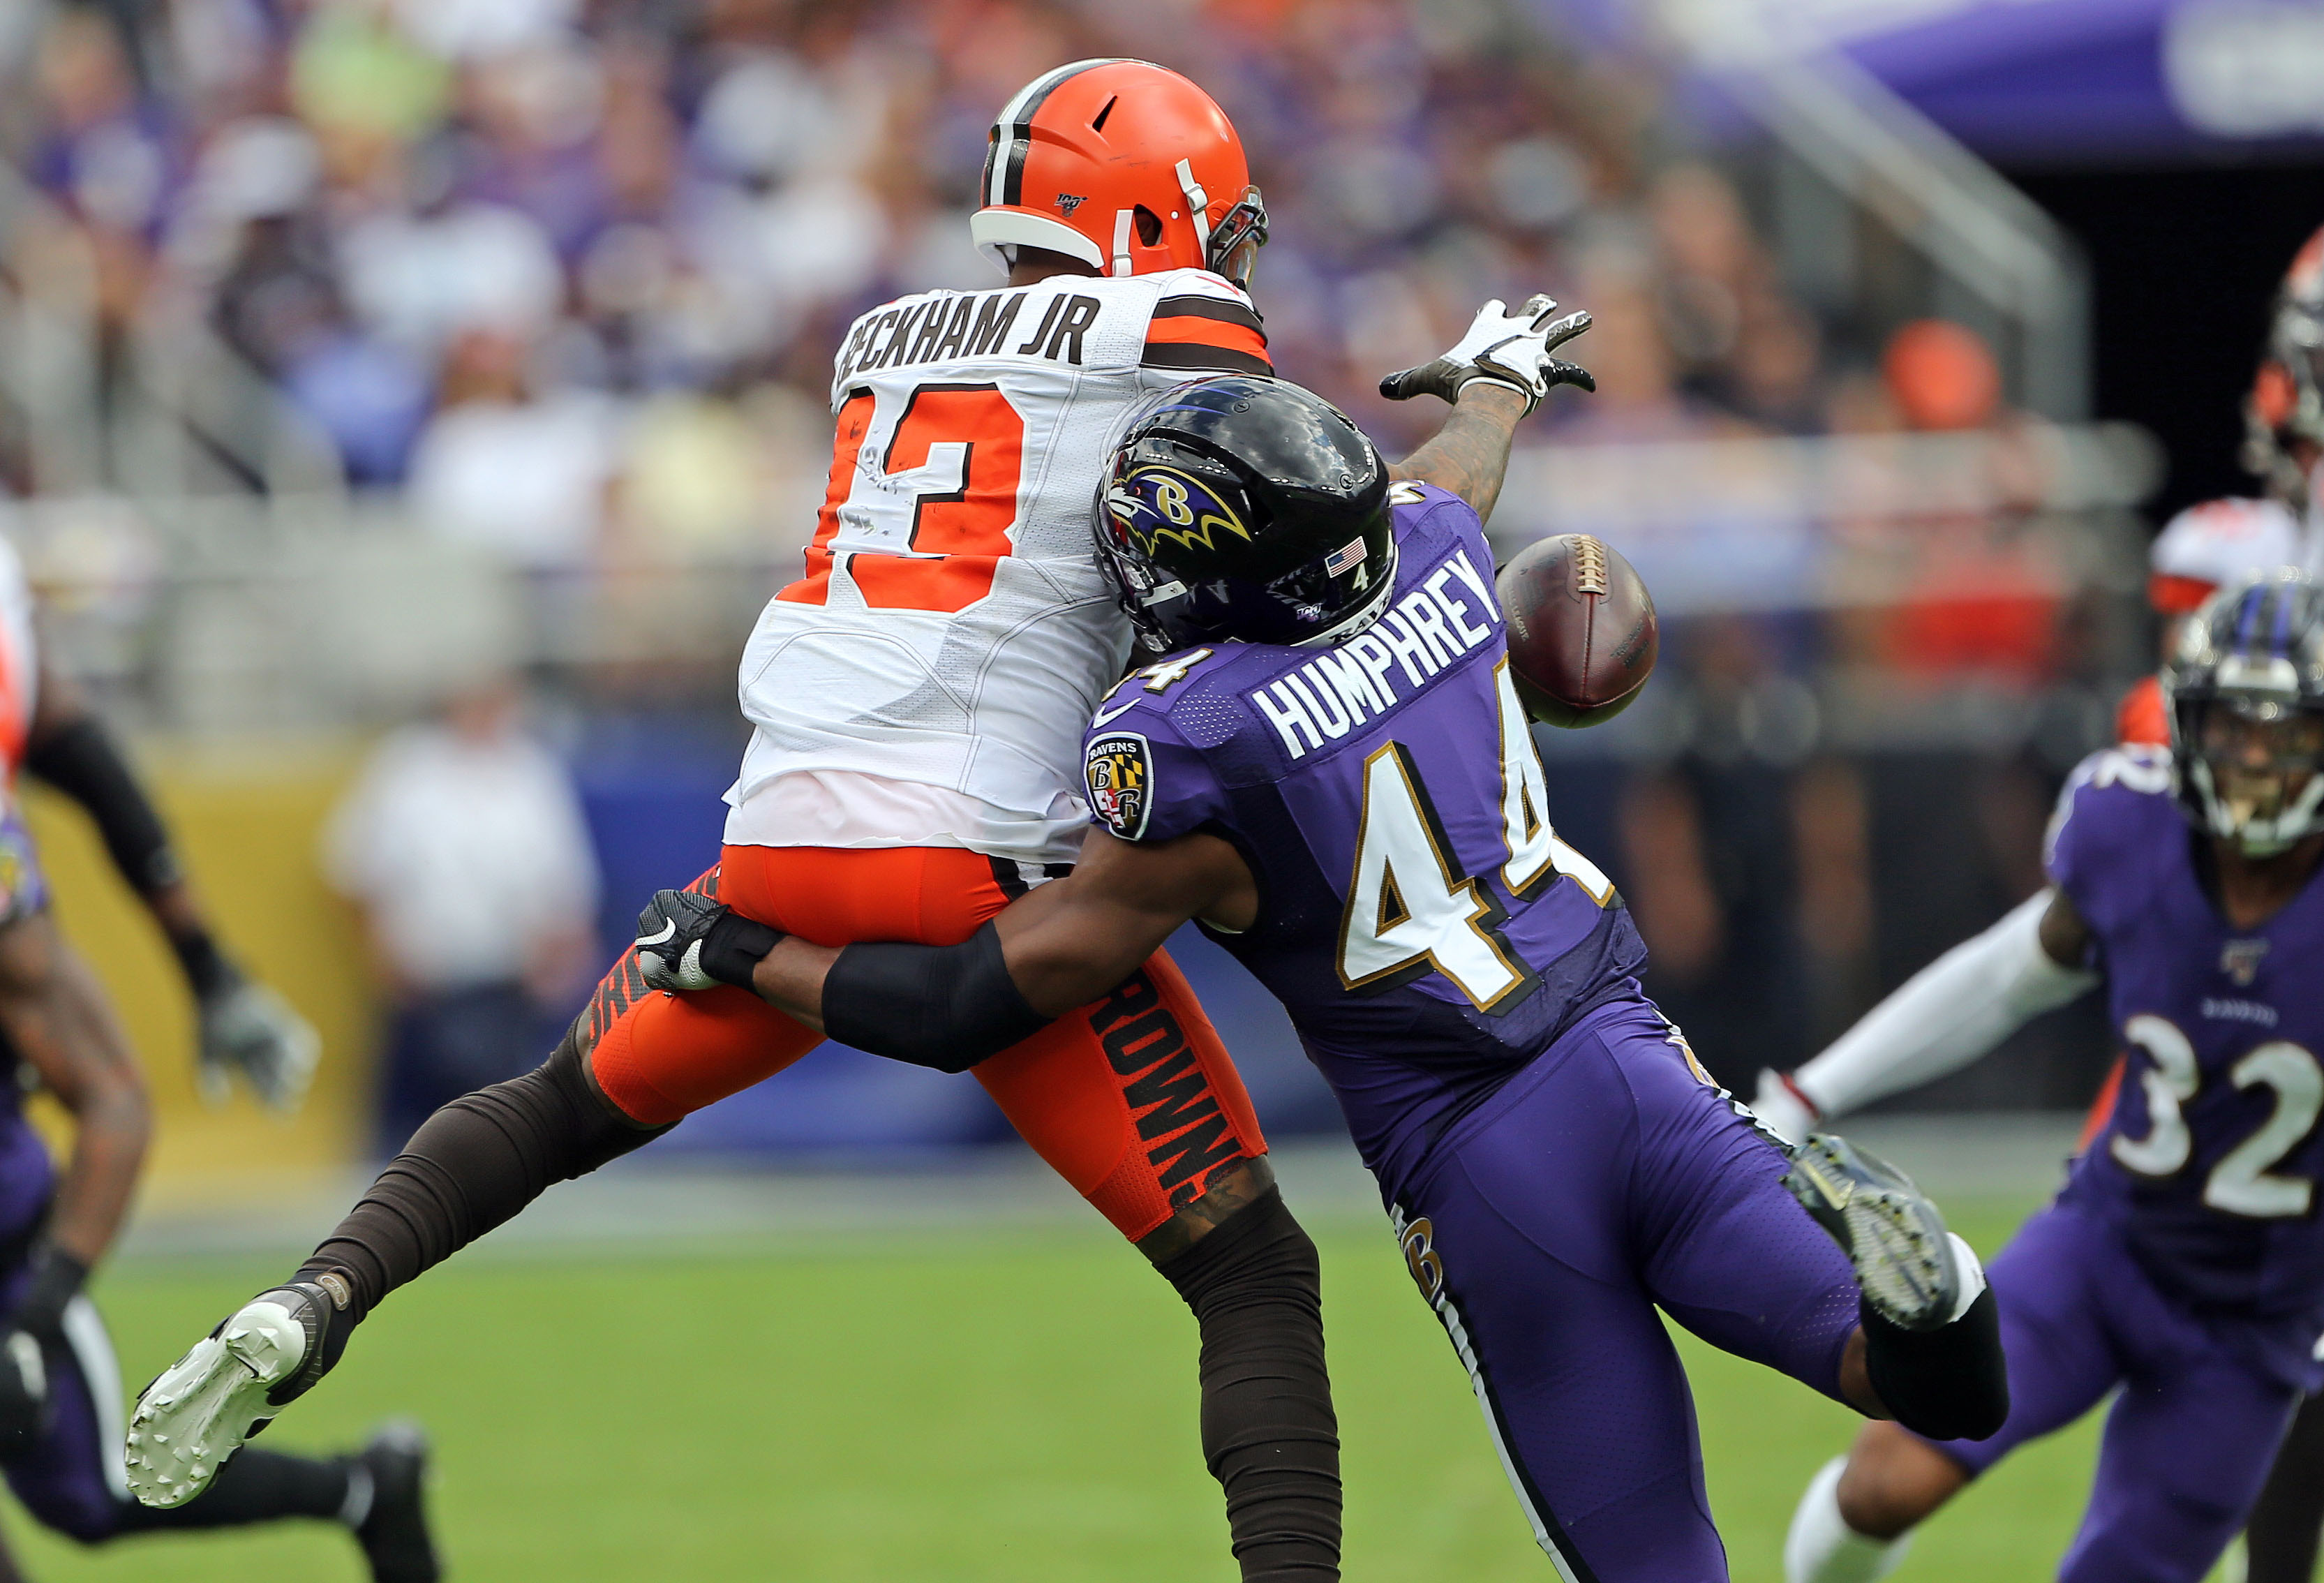 Odell Beckham Jr. fined for Marlon Humphrey fight, won't say he was choked, and didn't do 'what I wanted to do' to him